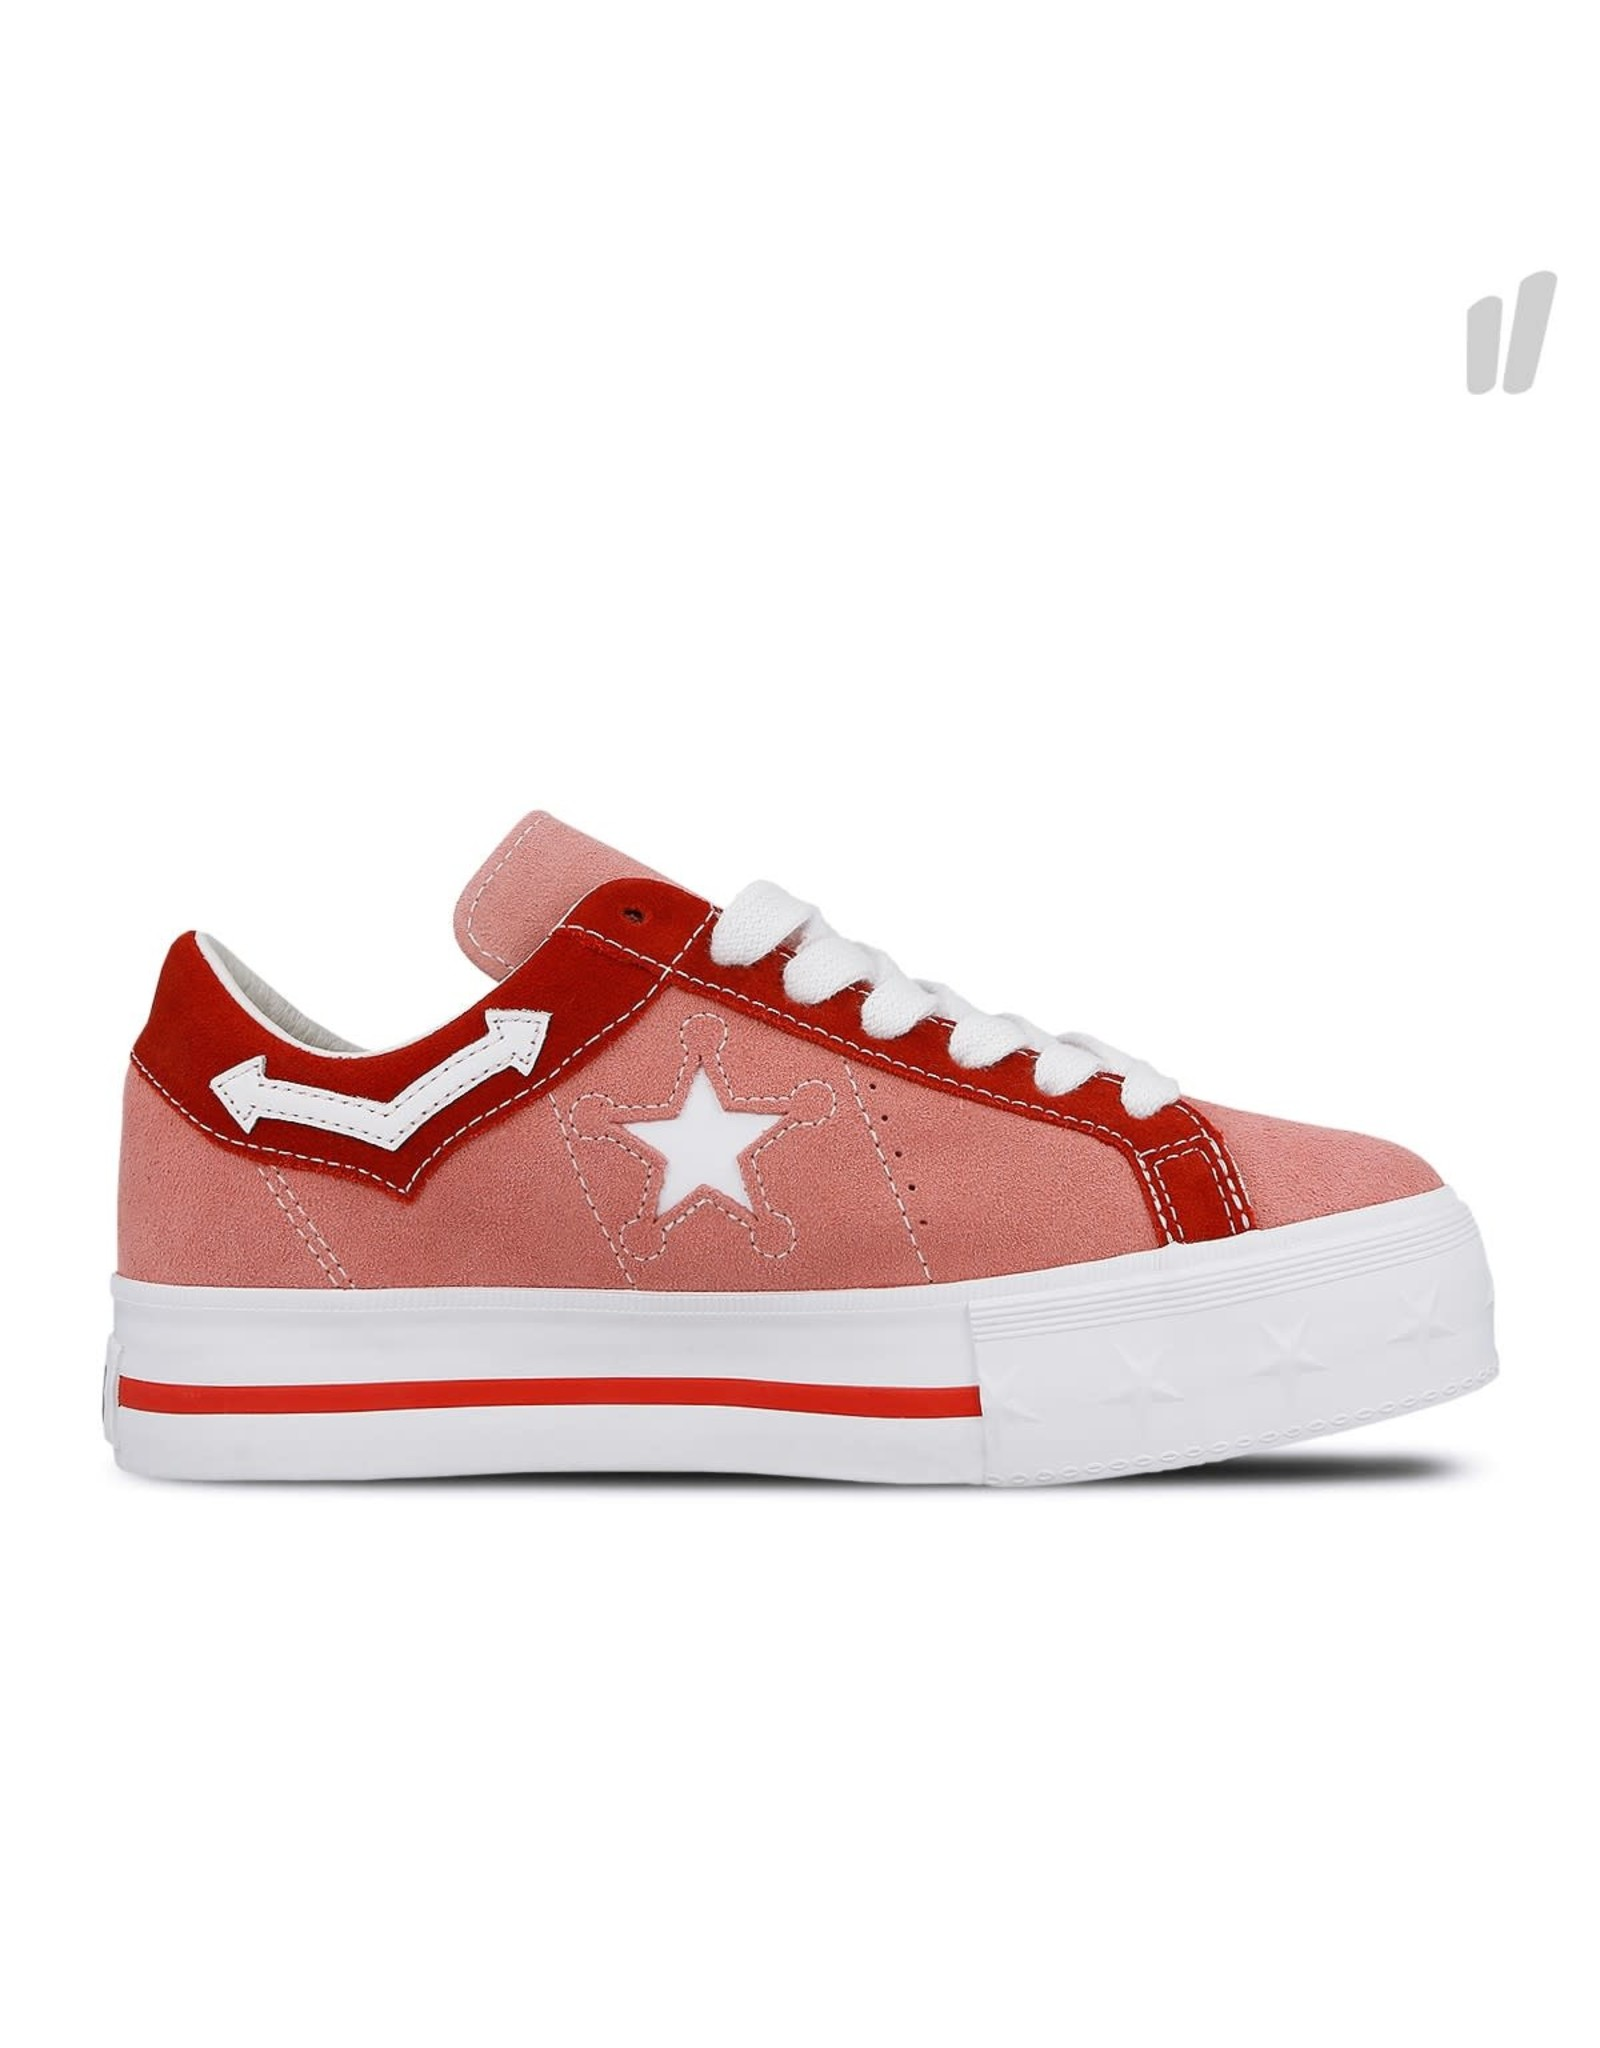 CONVERSE ONE STAR PLATFORM OX SUÈDE PINK ICING/TOMATO C987PI-563730C